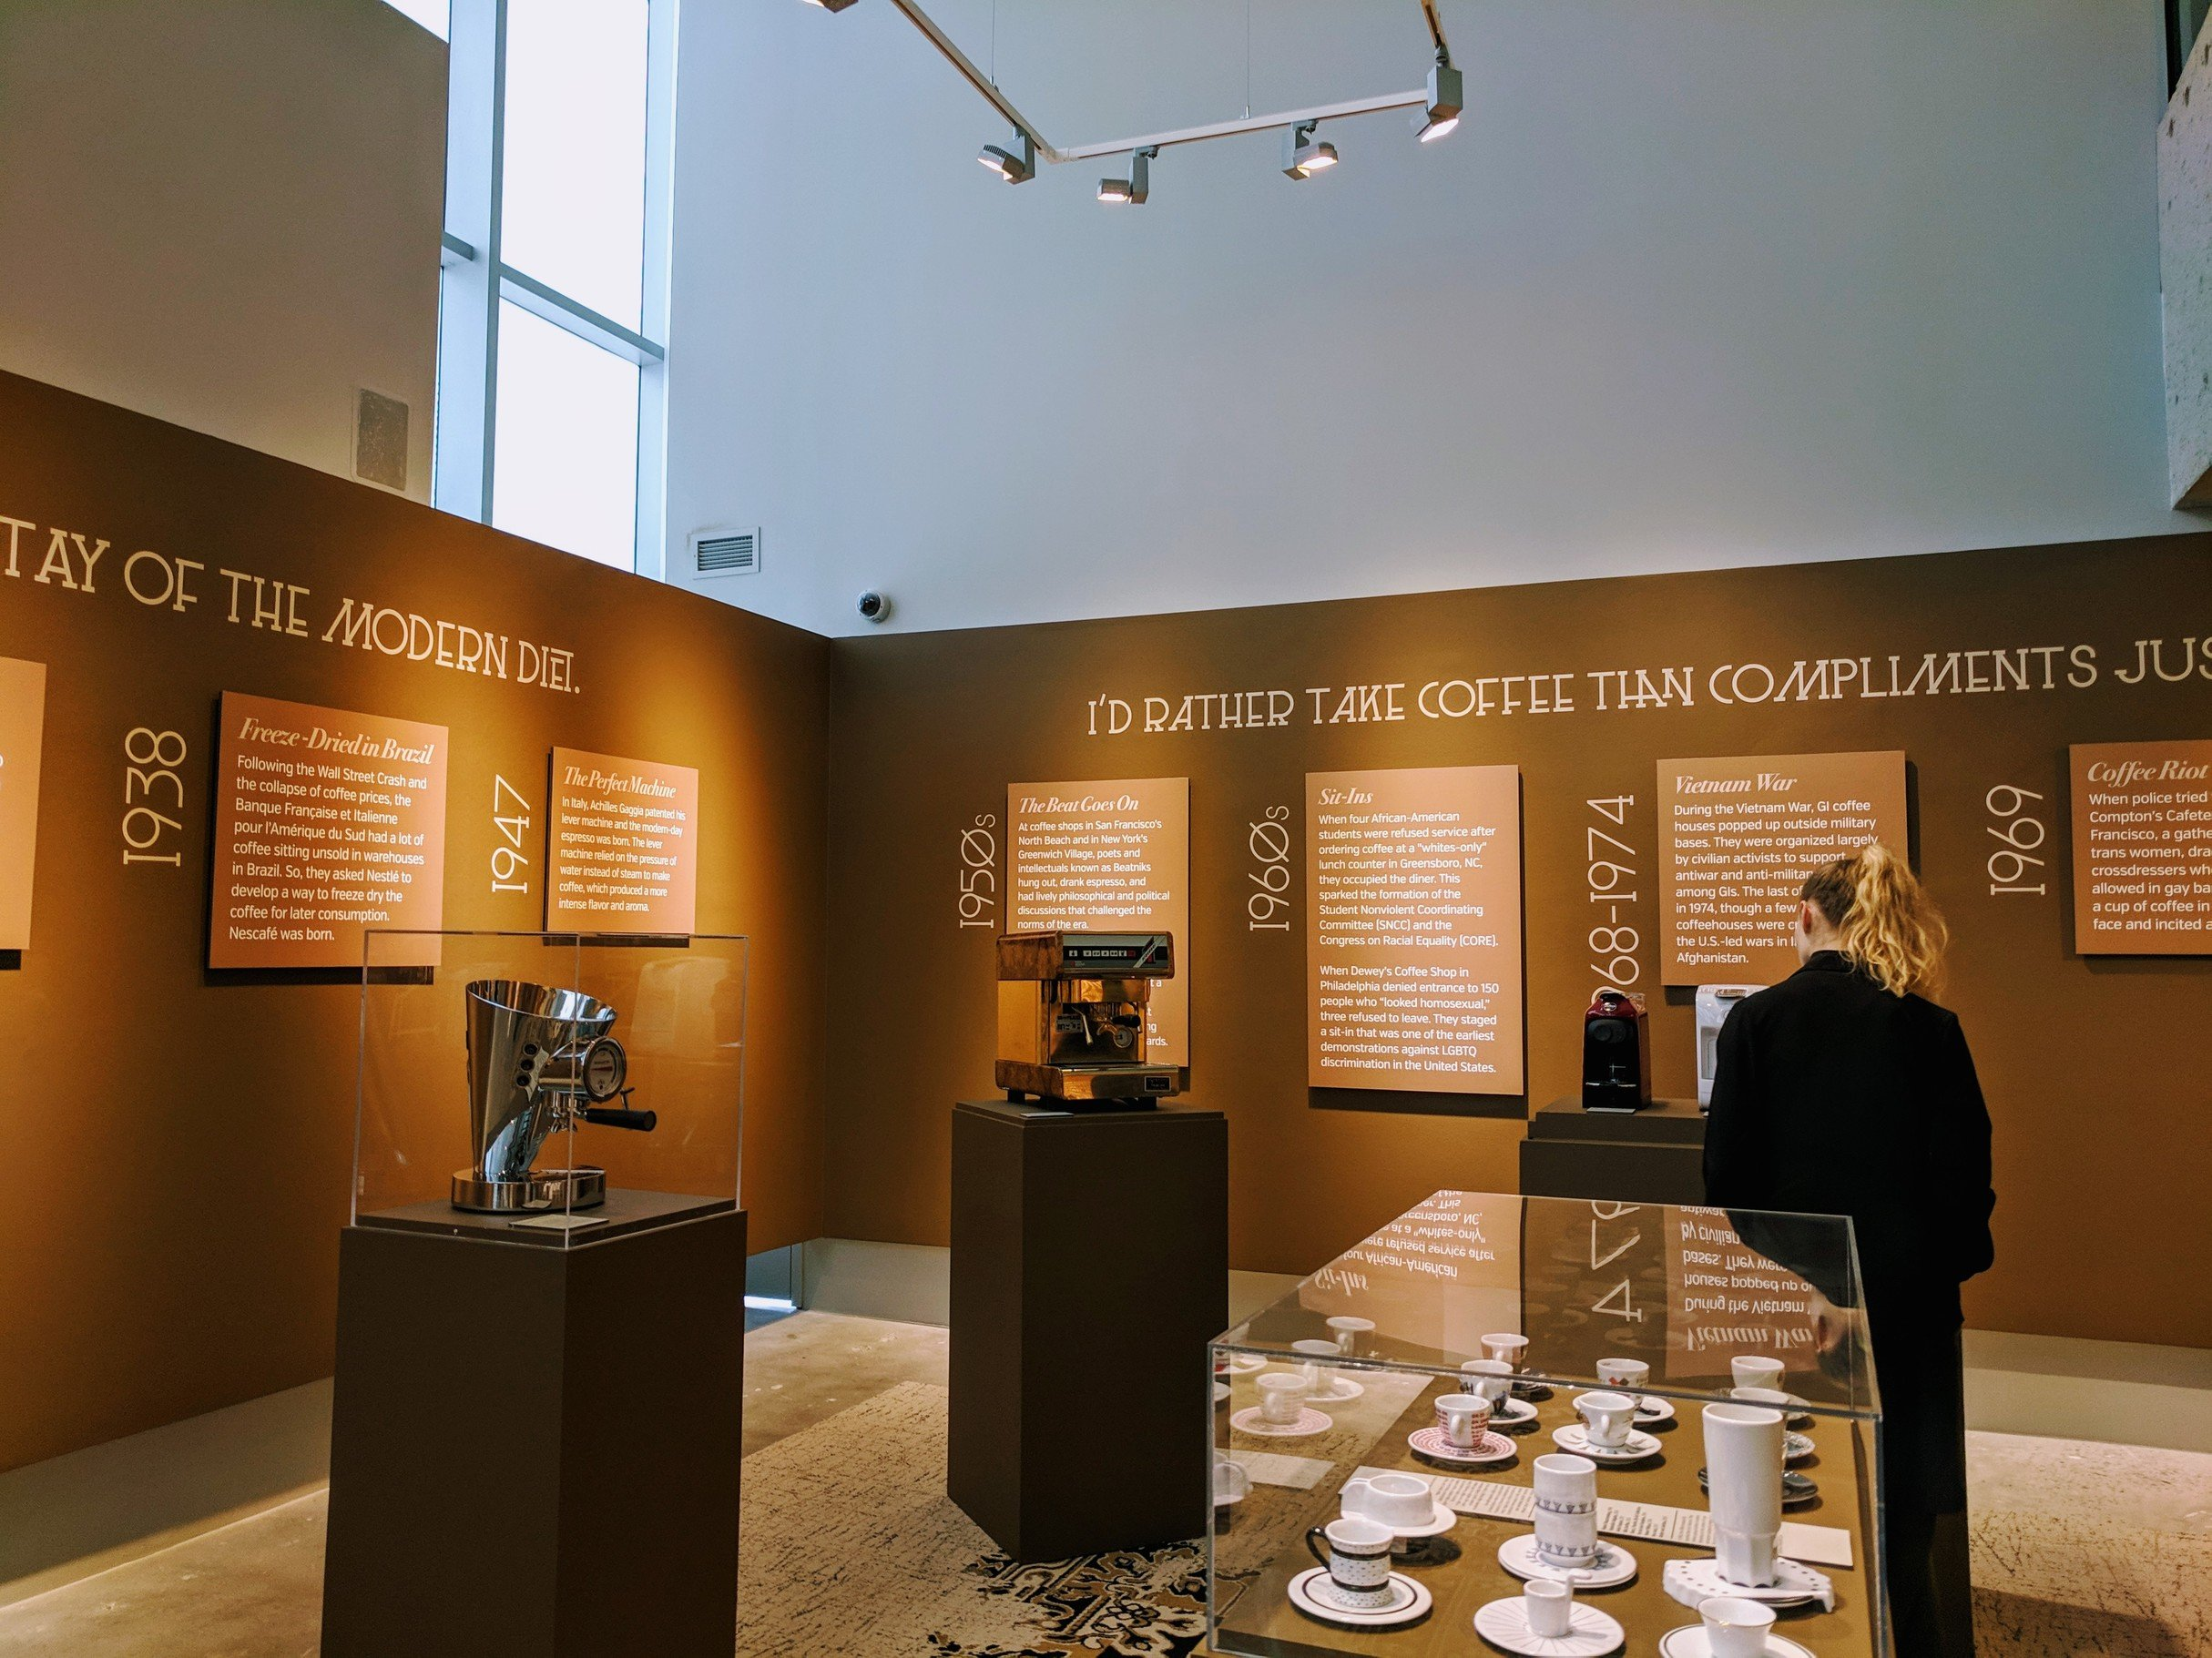 A display about coffee and the modern diet at MODA.